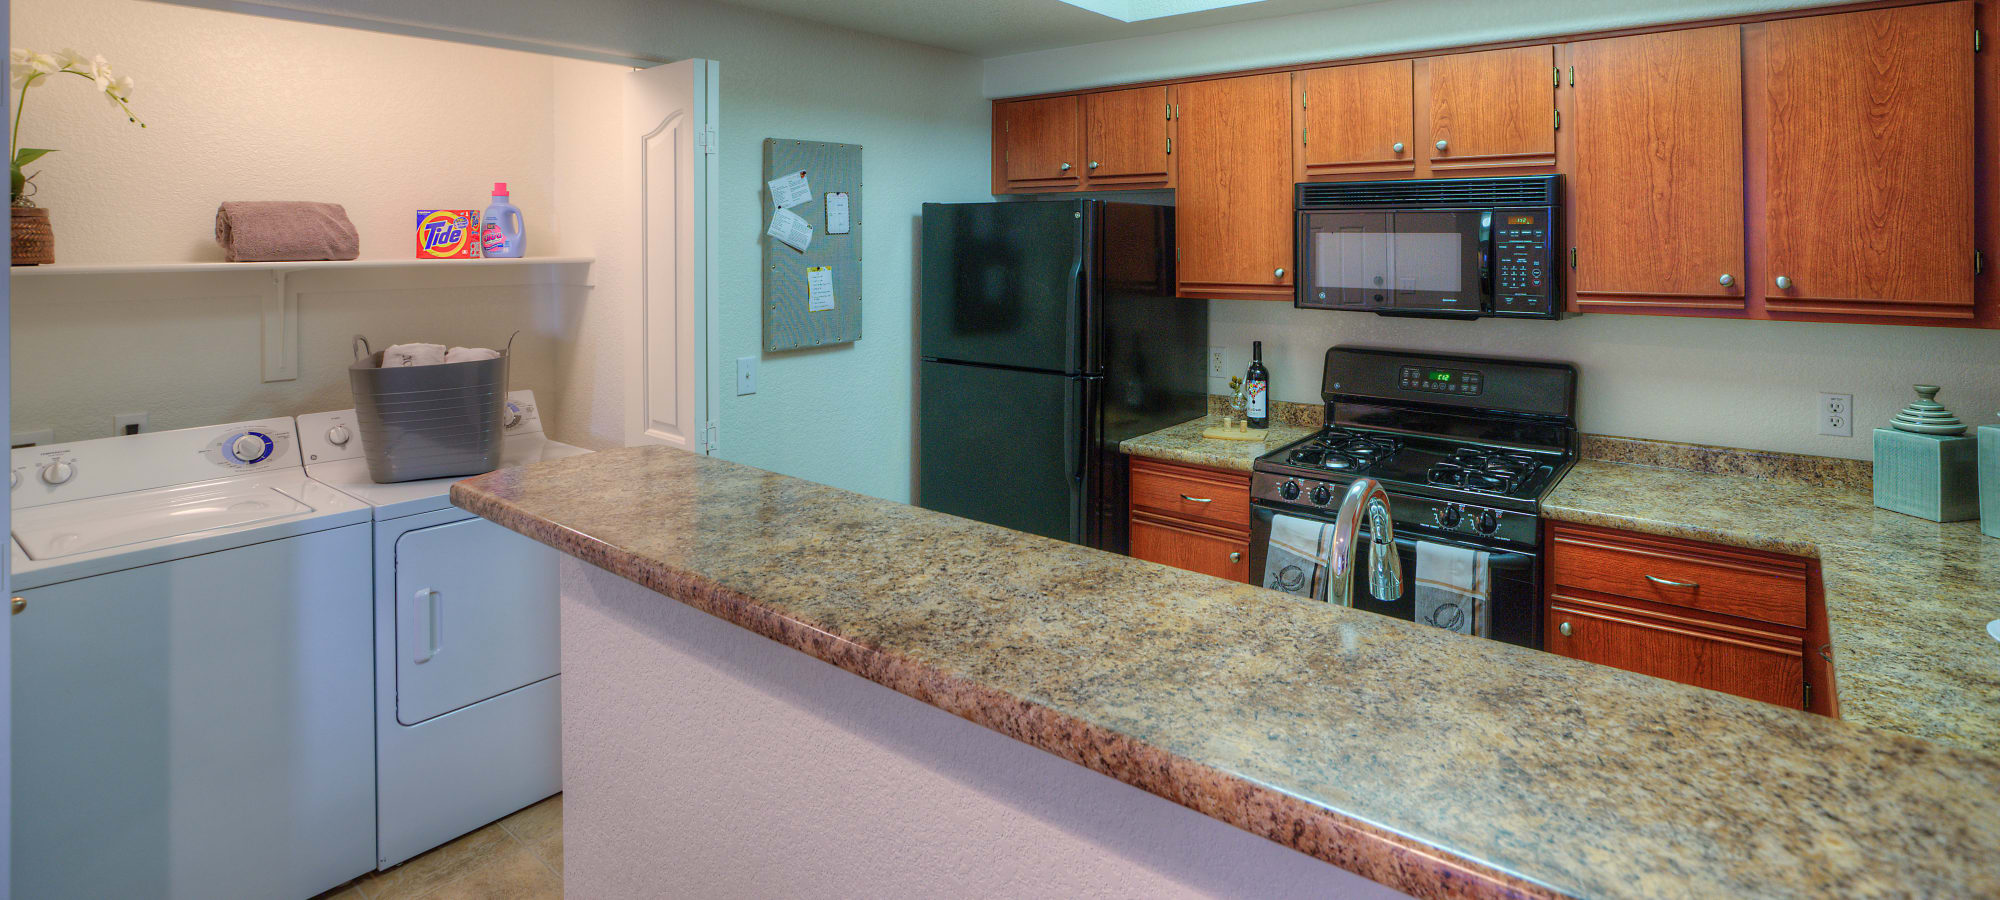 Kitchen with wooden cabinetry next to in-home washer/dryer at San Prado in Glendale, Arizona